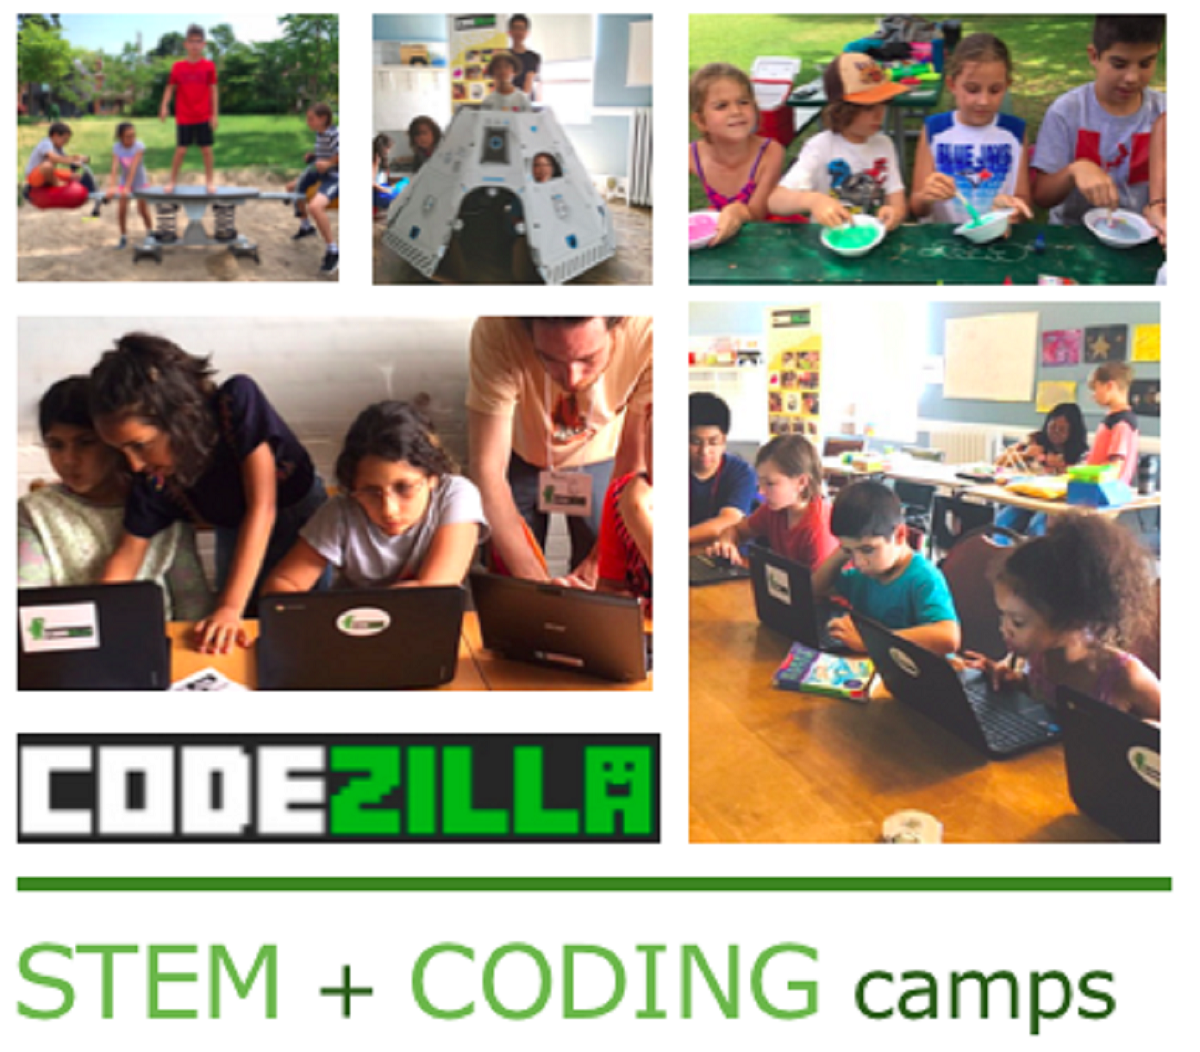 [LEDBURY] Aug 4-7 Summer Camp | Space Makers (6-10) -OR- Game Makers Coding Level 1/2 (8-14)